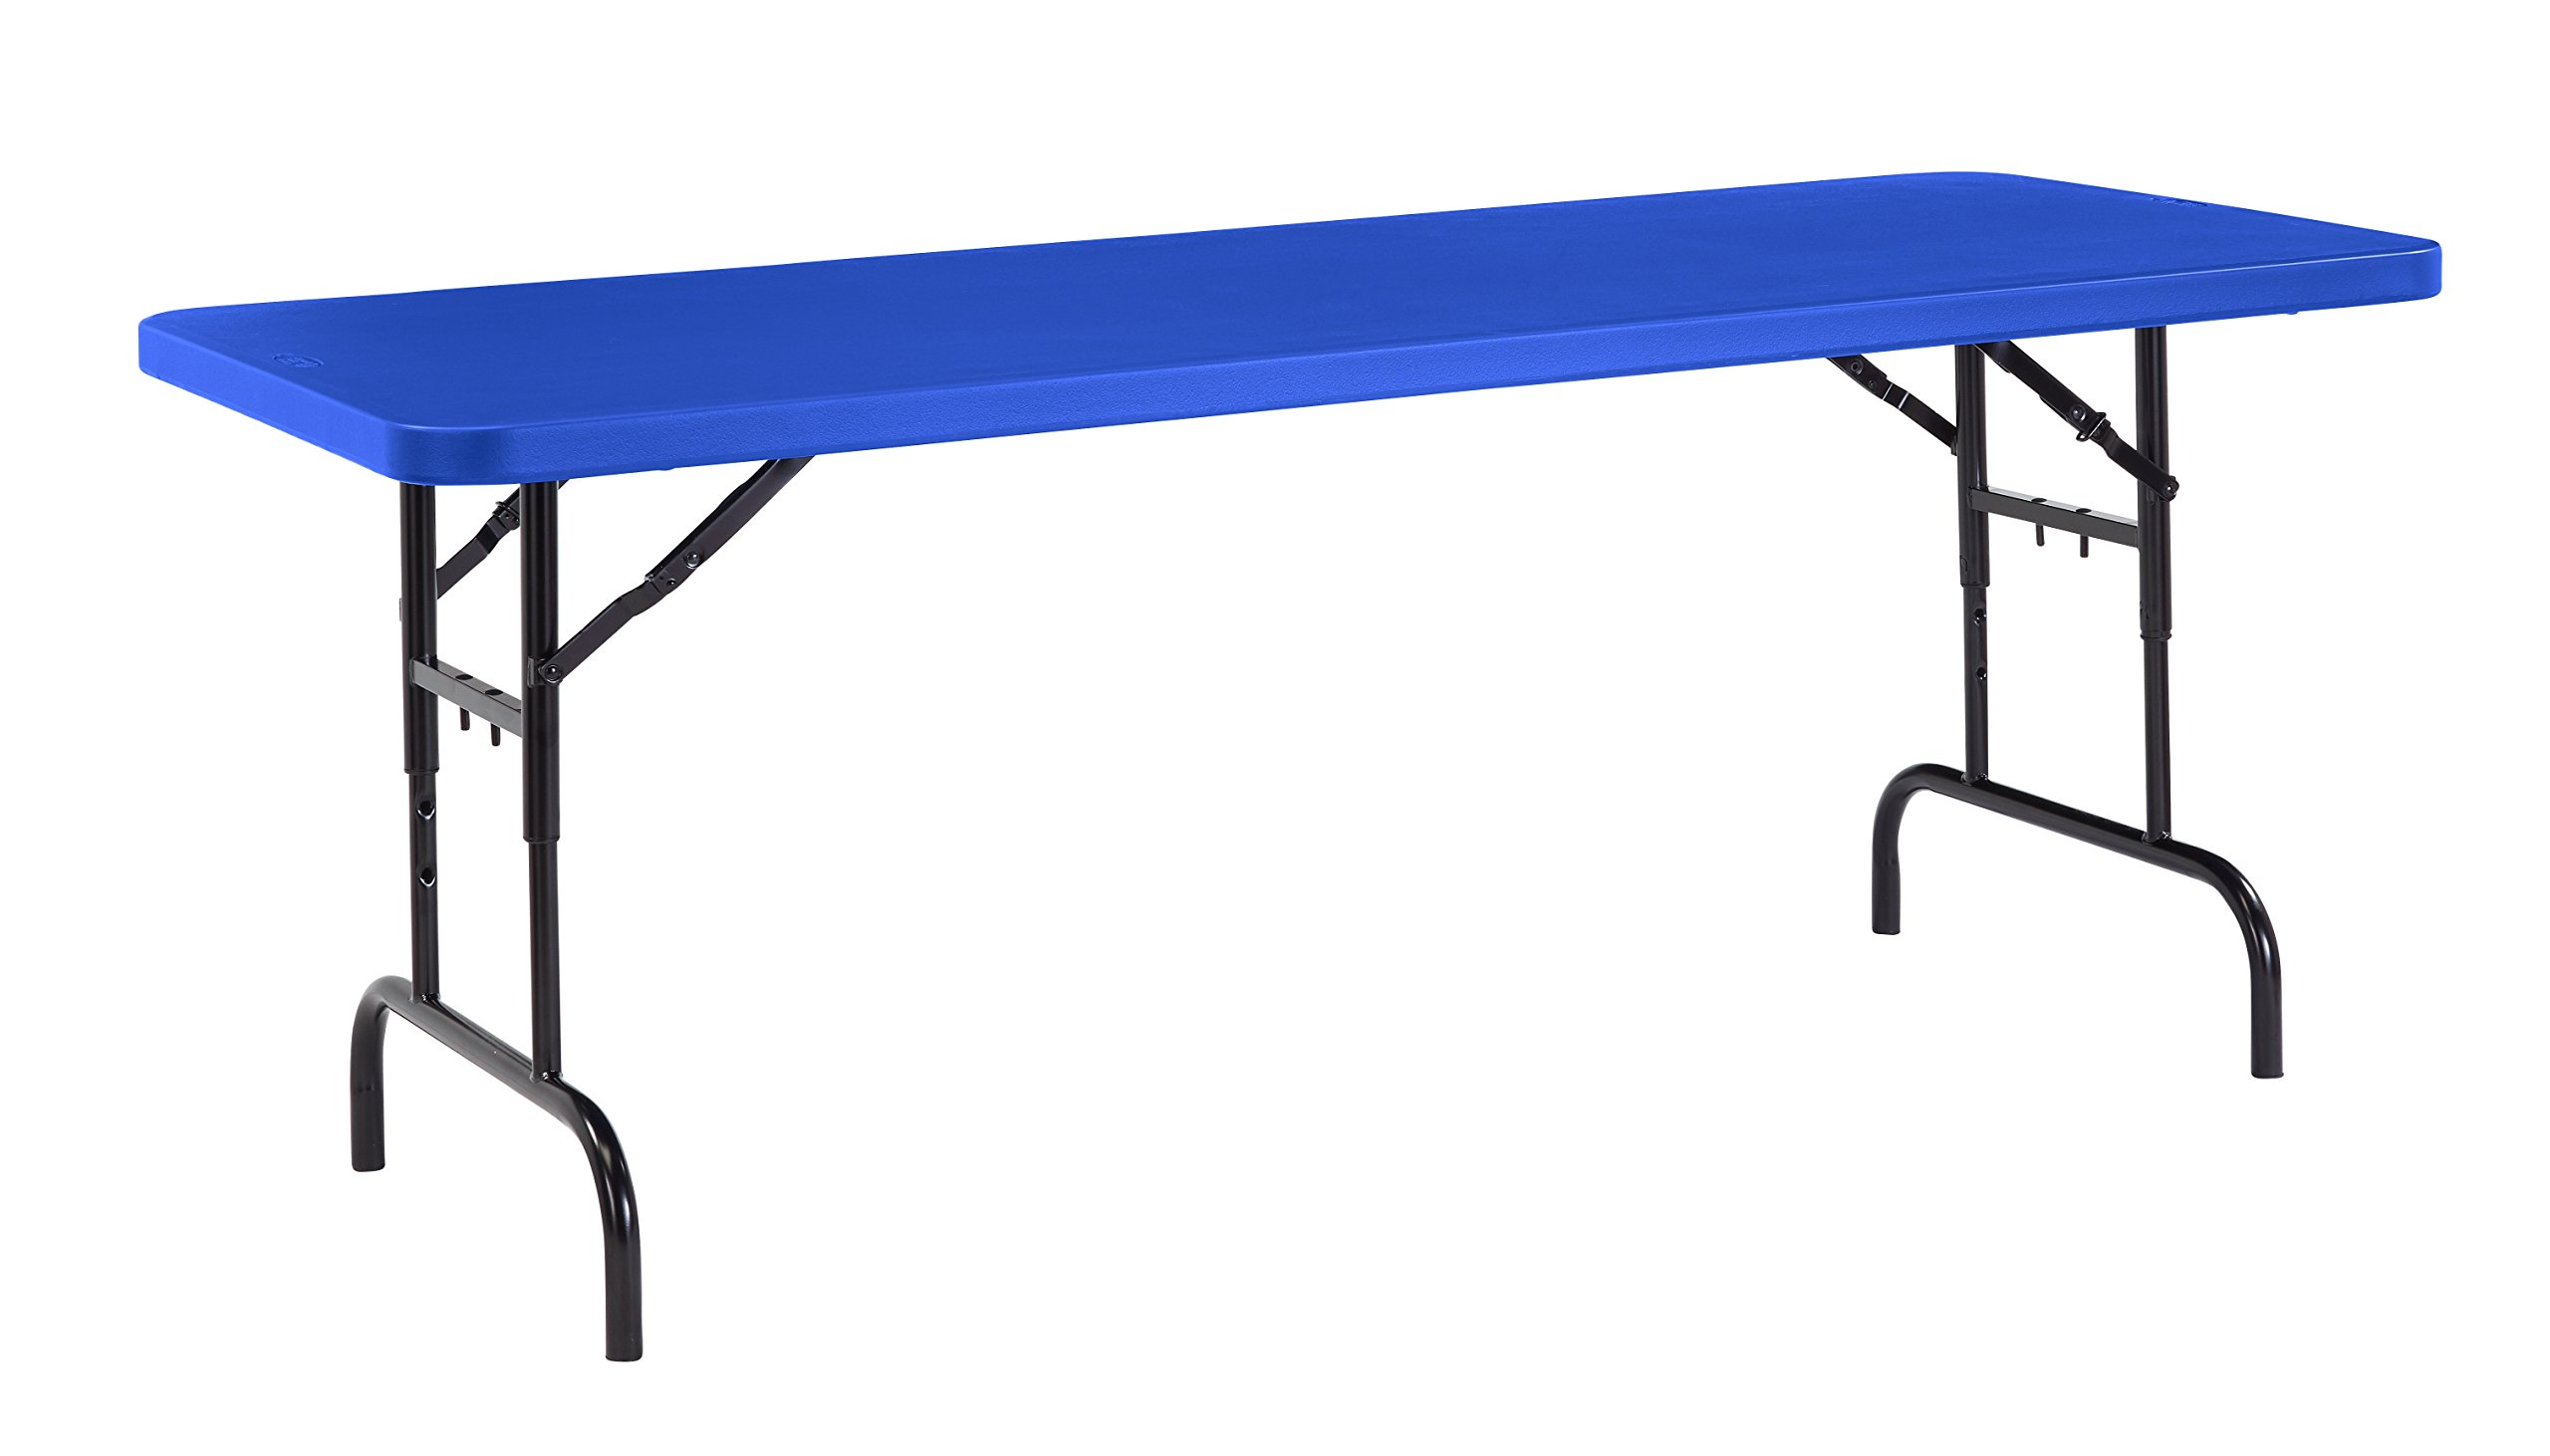 National Public Seating BTA3072 Series Steel Frame Rectangular Adjustable Height Plastic Top Folding Table, 1000 lbs Capacity, 72'' Length x 30'' Width x 32'' Height, Blue/Black